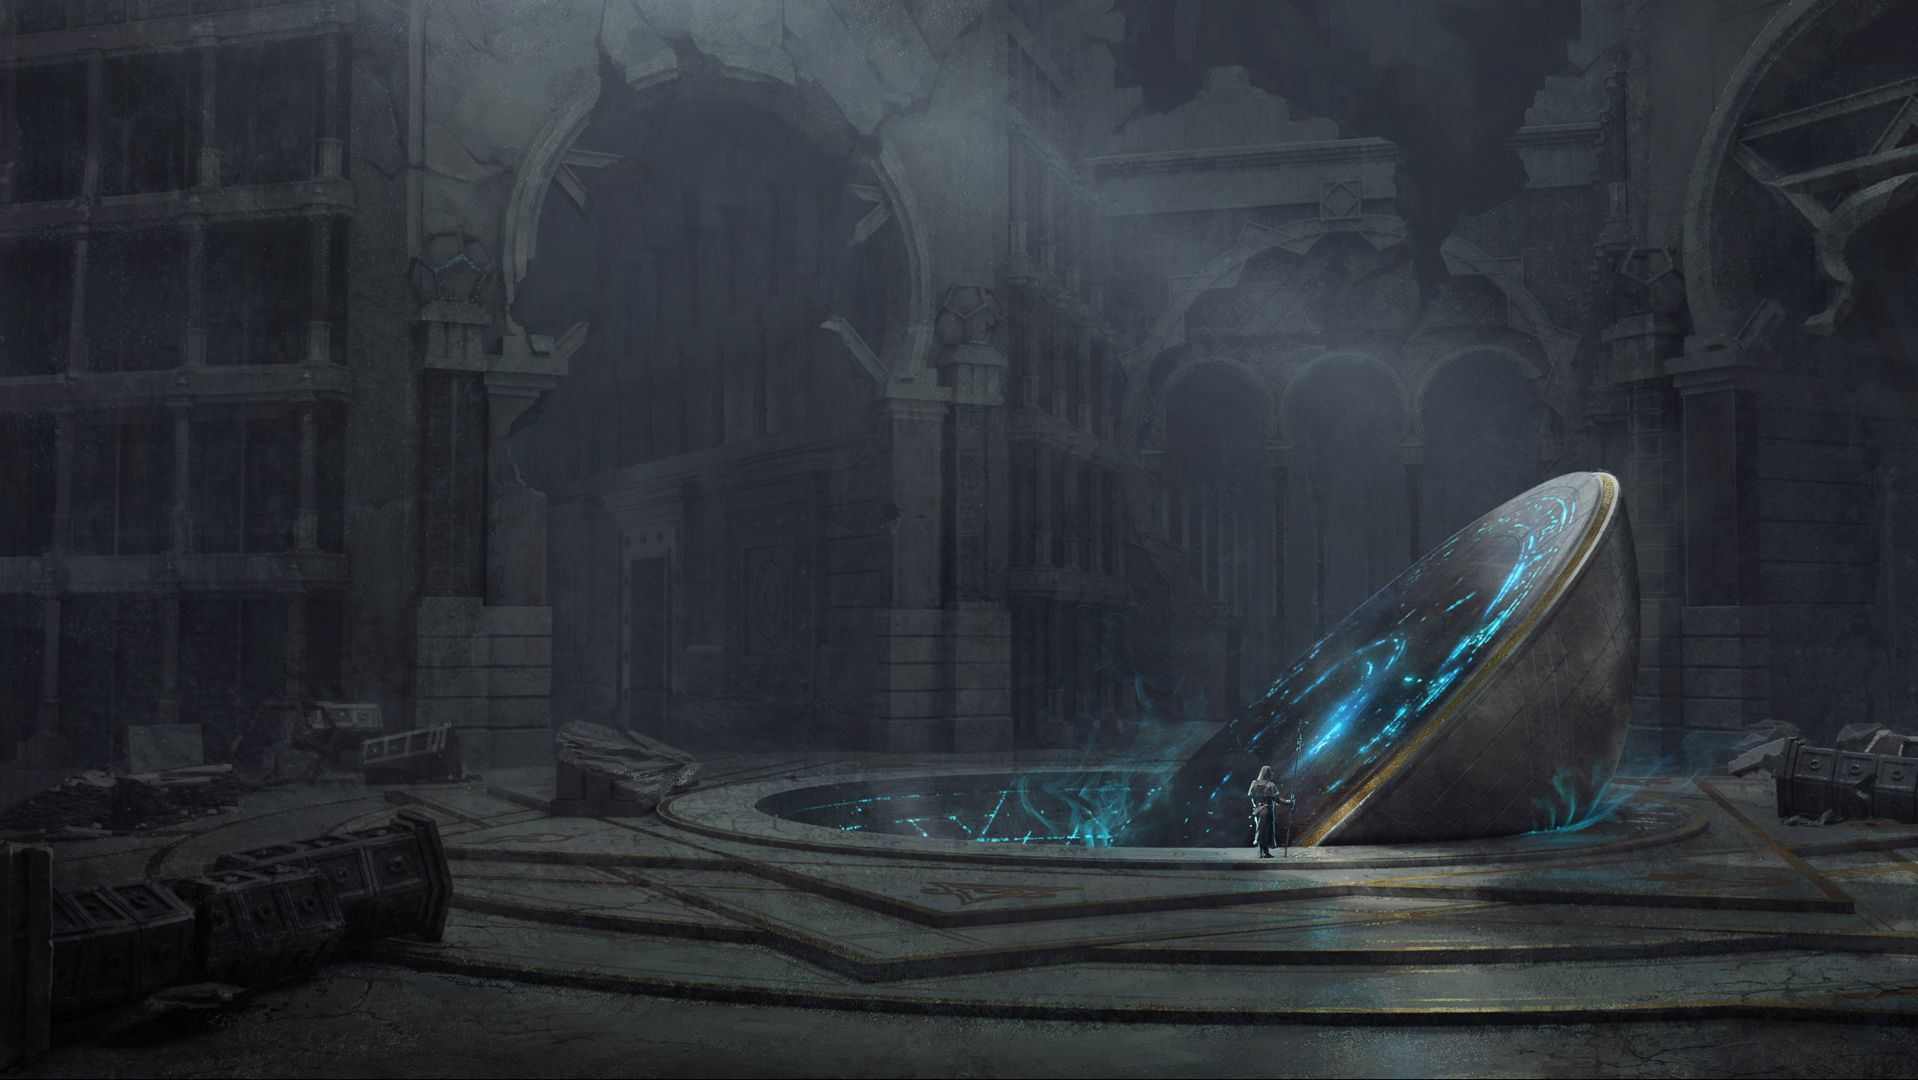 The Celestial Vault, unlocked by the revelations of the Lunatropic Demisphere